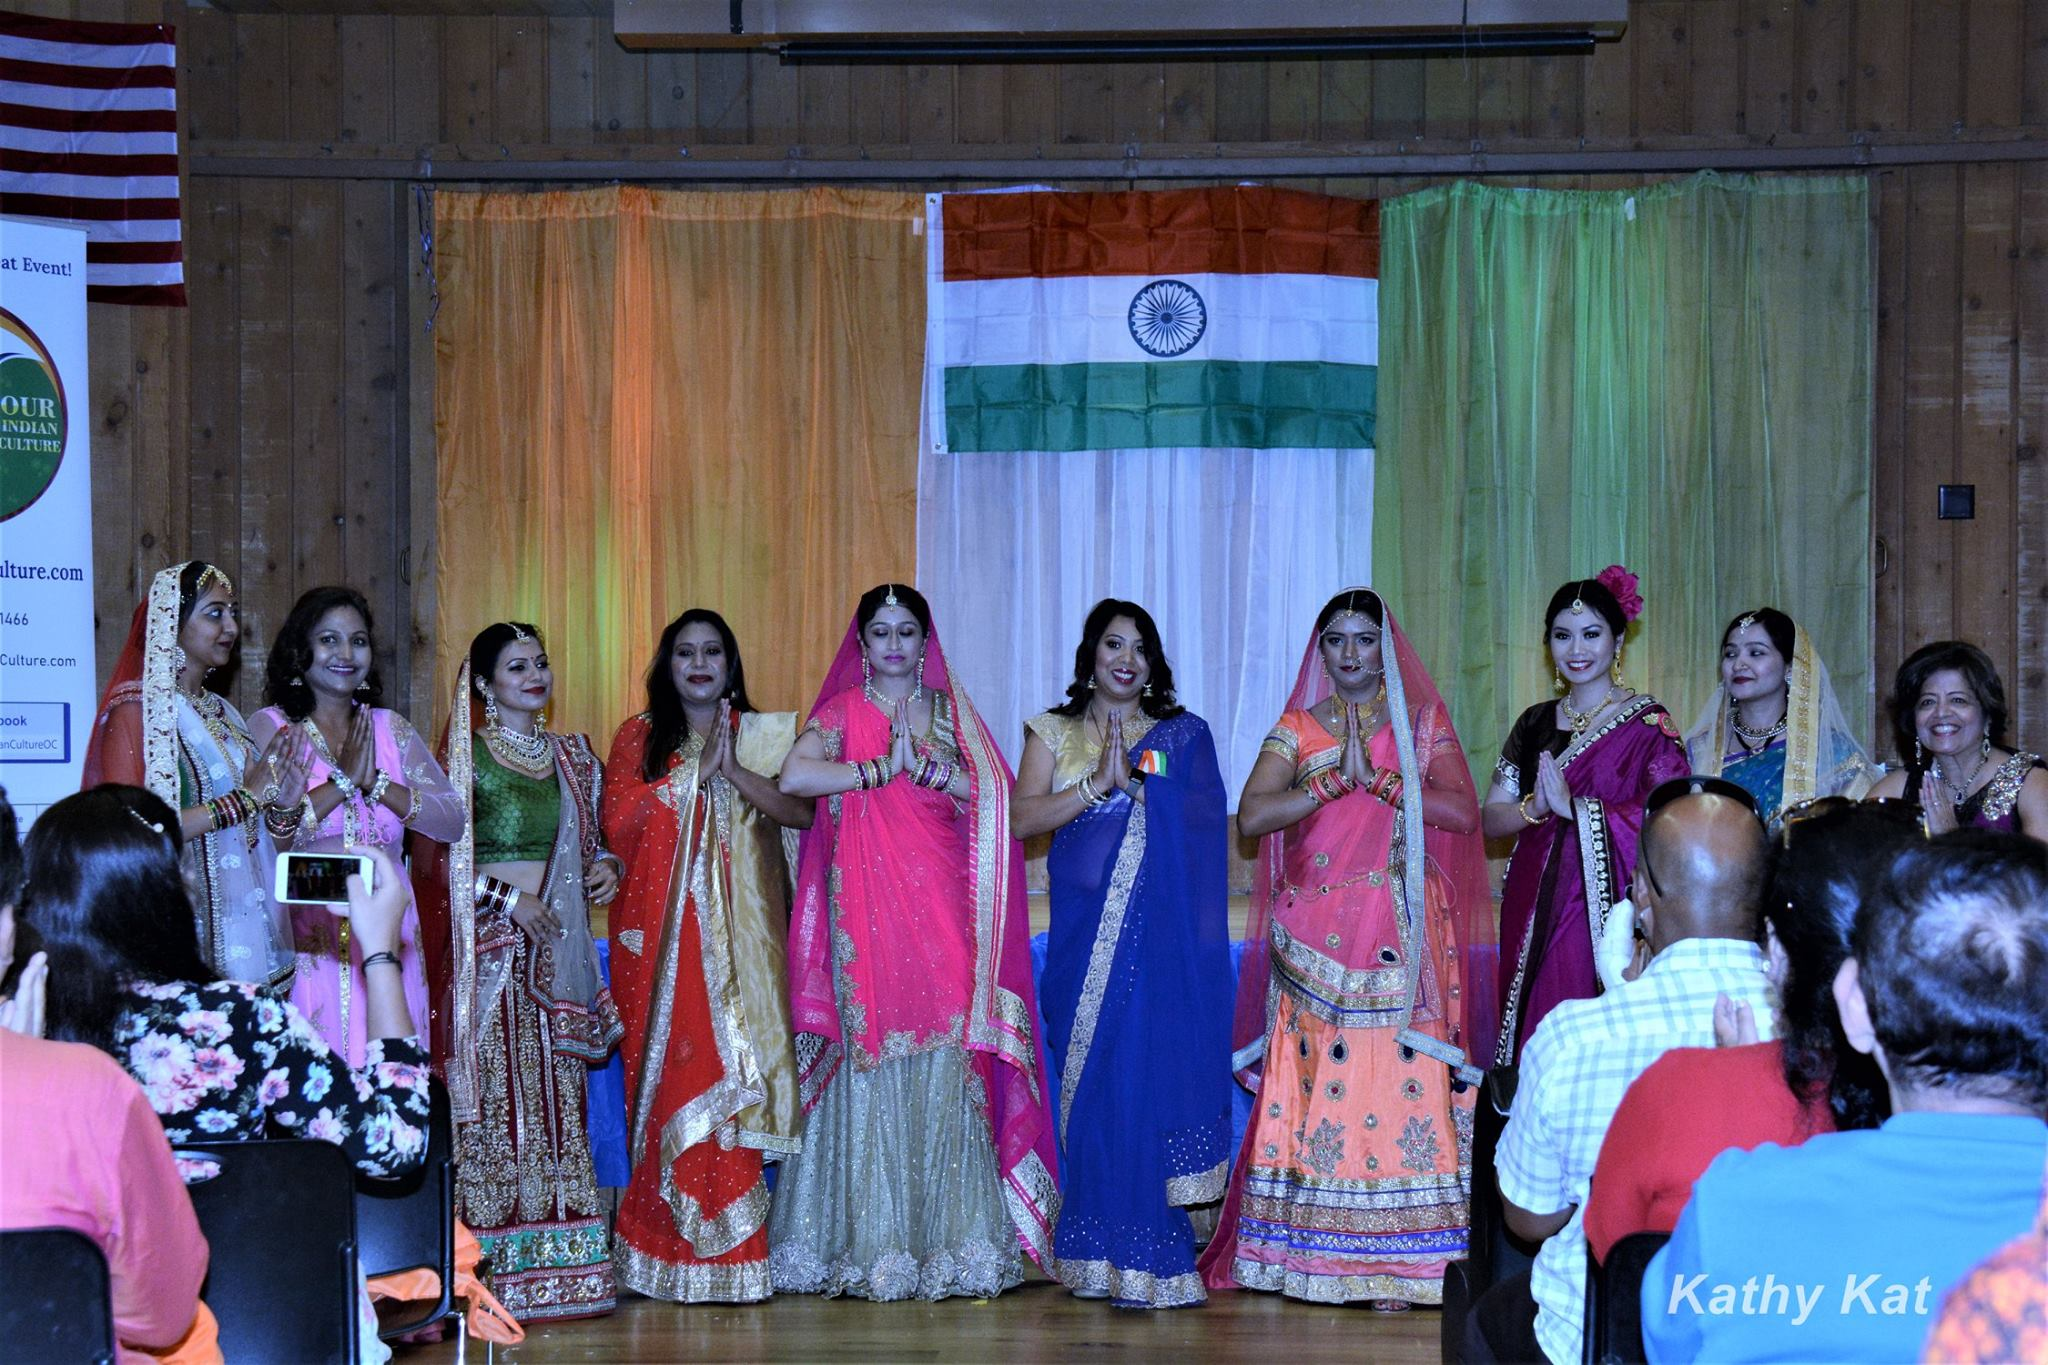 Brides of India Fashion Show by Our Indian Culture